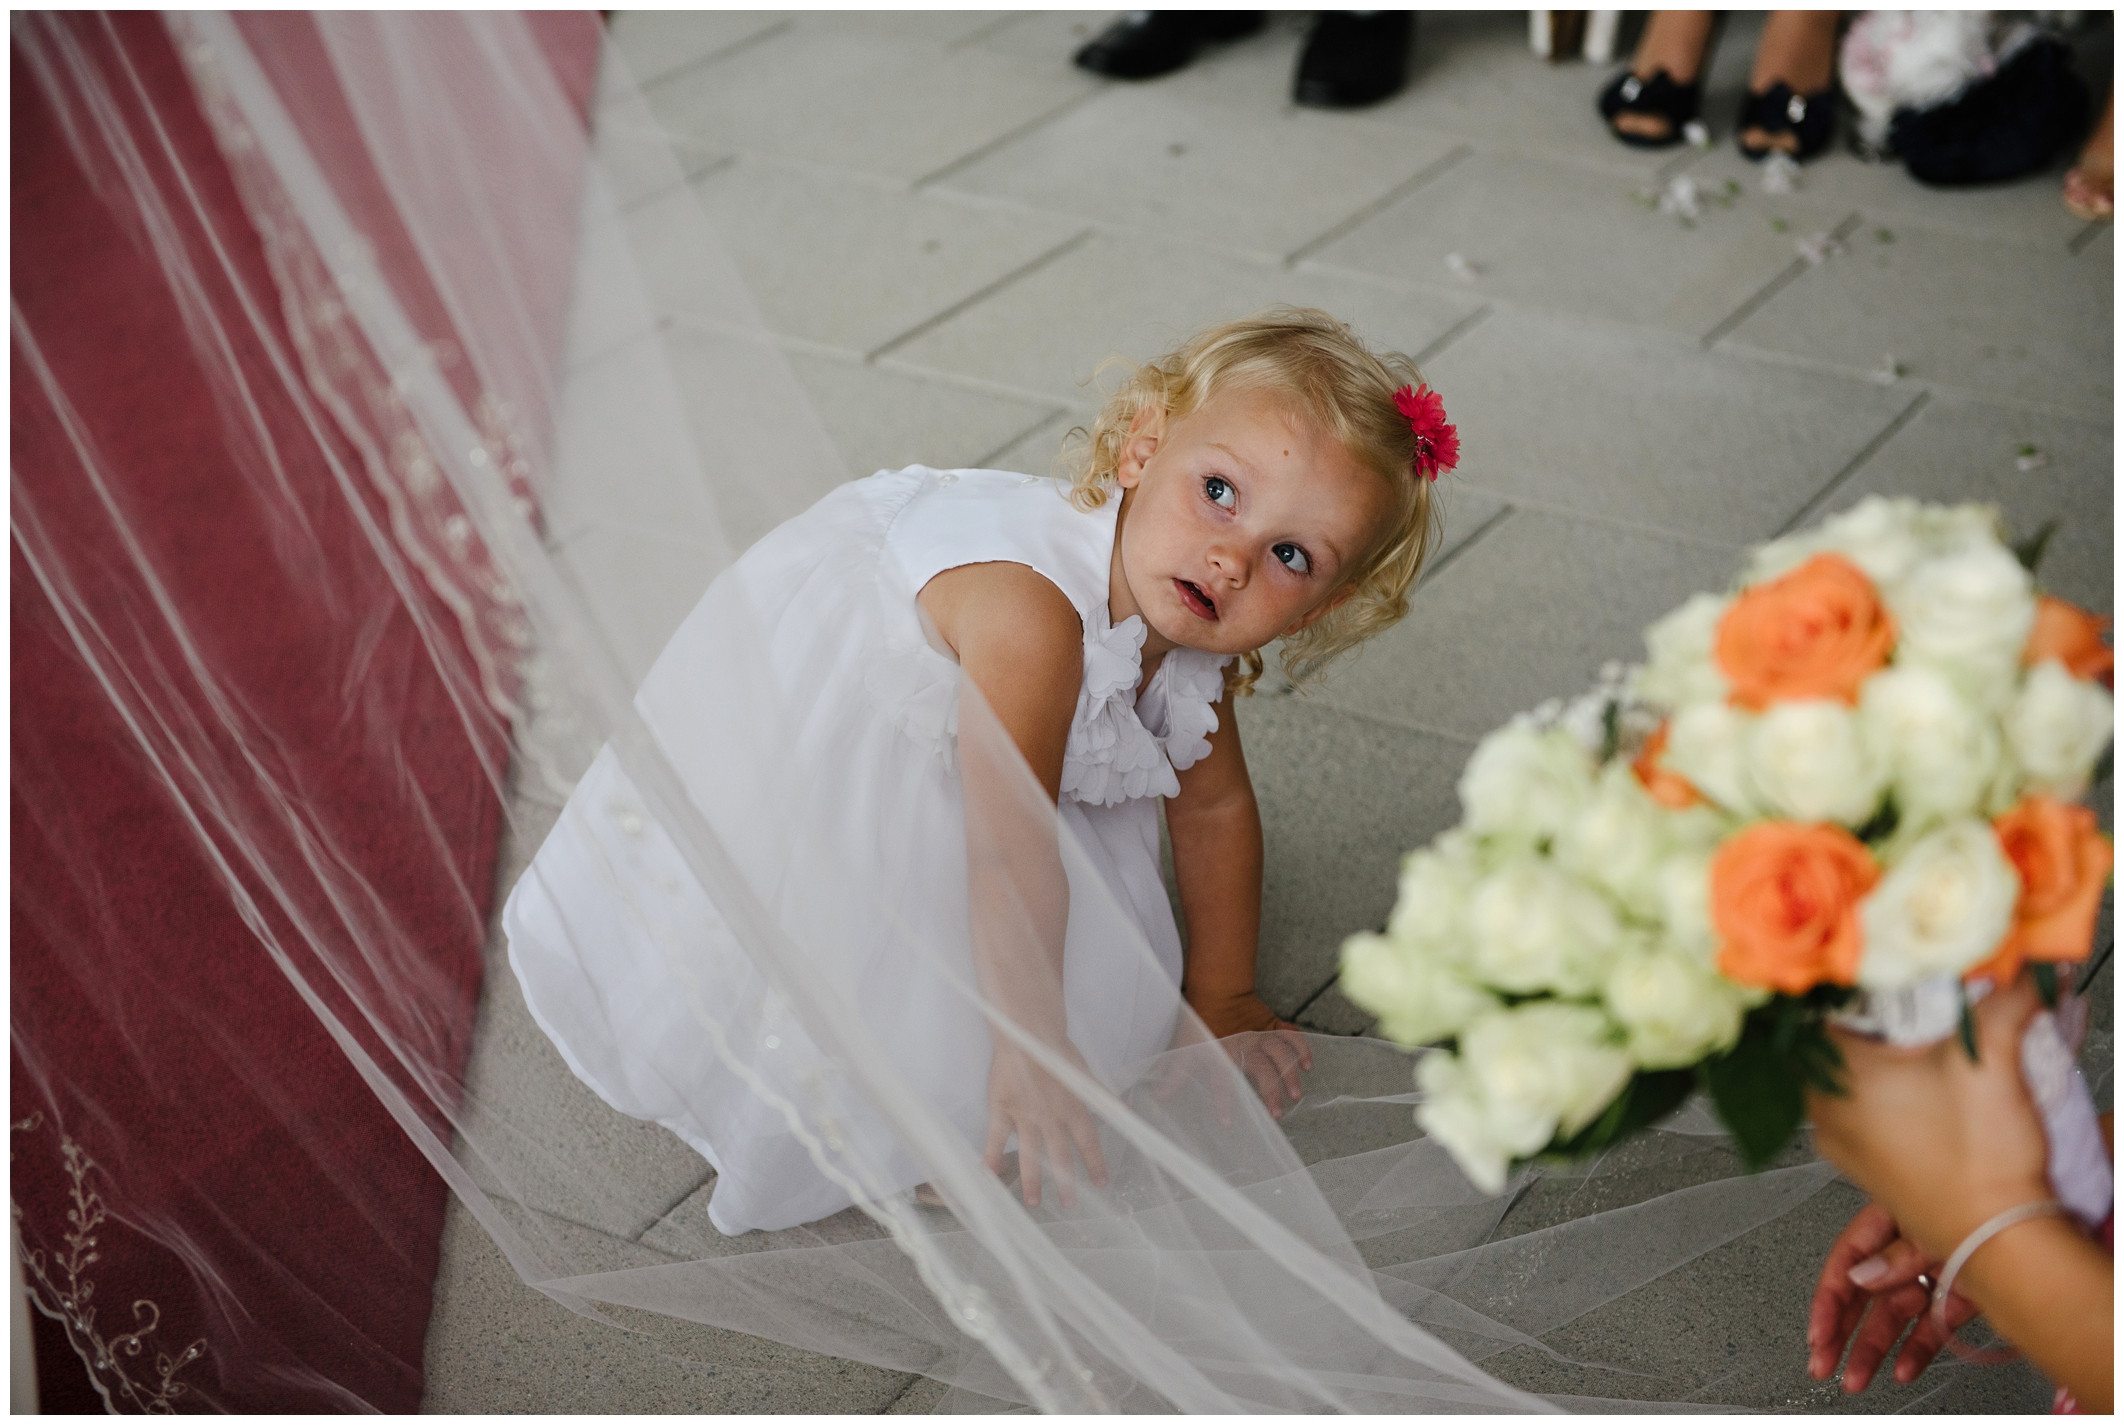 Lynsey_Andy_Rossharbour_Fermanagh_wedding_jude_browne_photography_0067.jpg